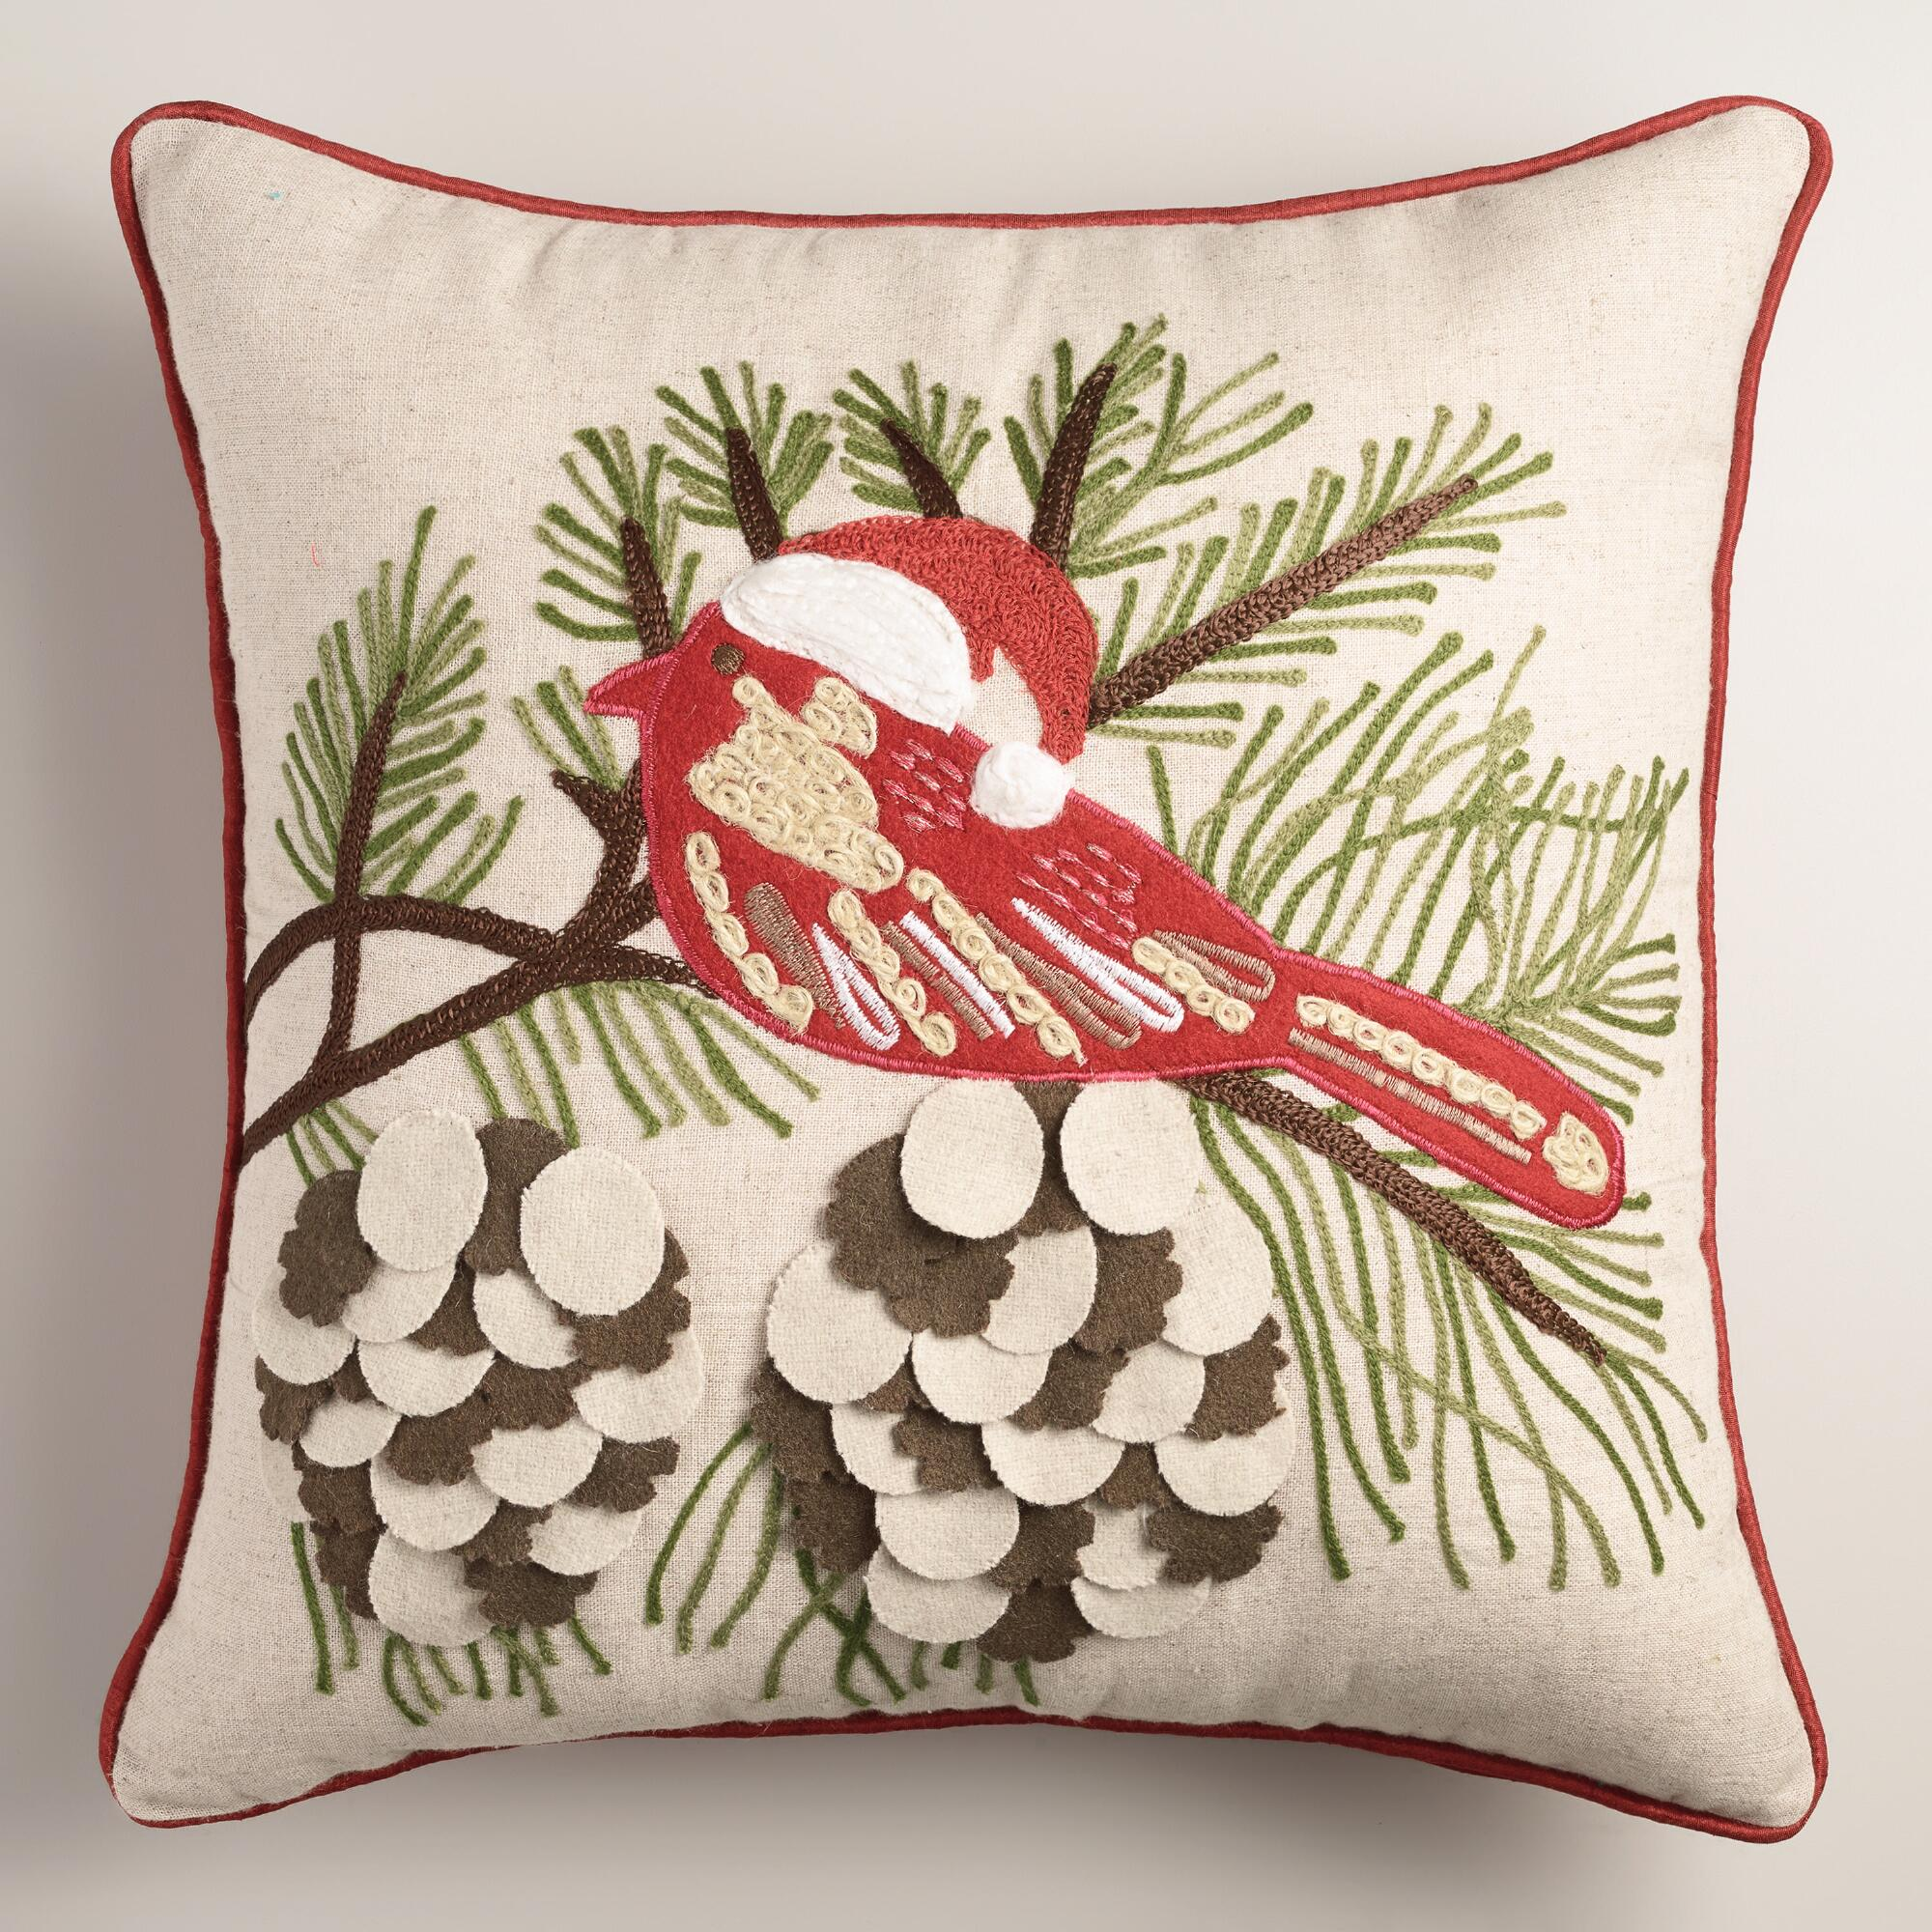 Throw Pillows With Birds : Winter Bird Embroidered Throw Pillow World Market